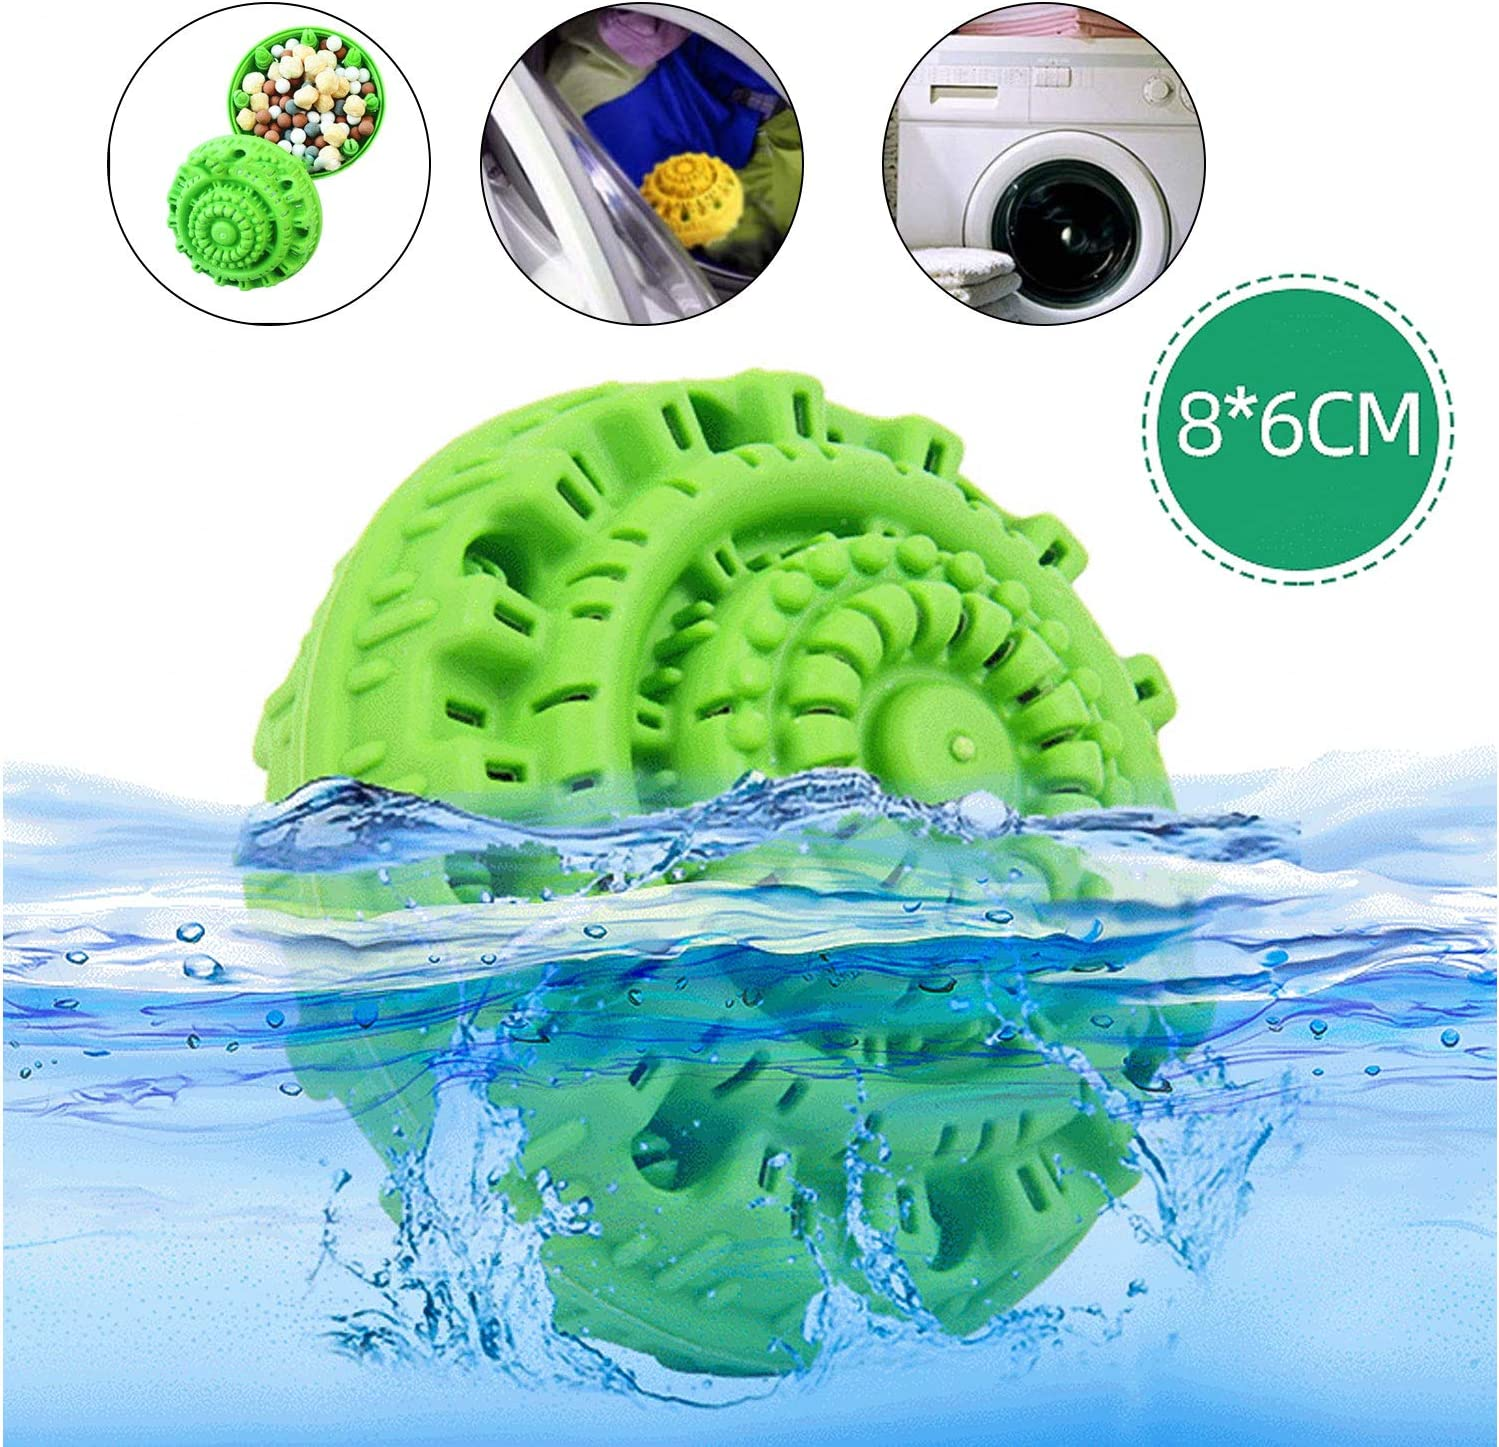 AWZSDF Magic Laundry Ball,Reusable Eco-Friendly Chemical Free Washer Machine Laundry Balls Natural Alternative,Laundry Detergent for up to 1000 Washings,6PCS